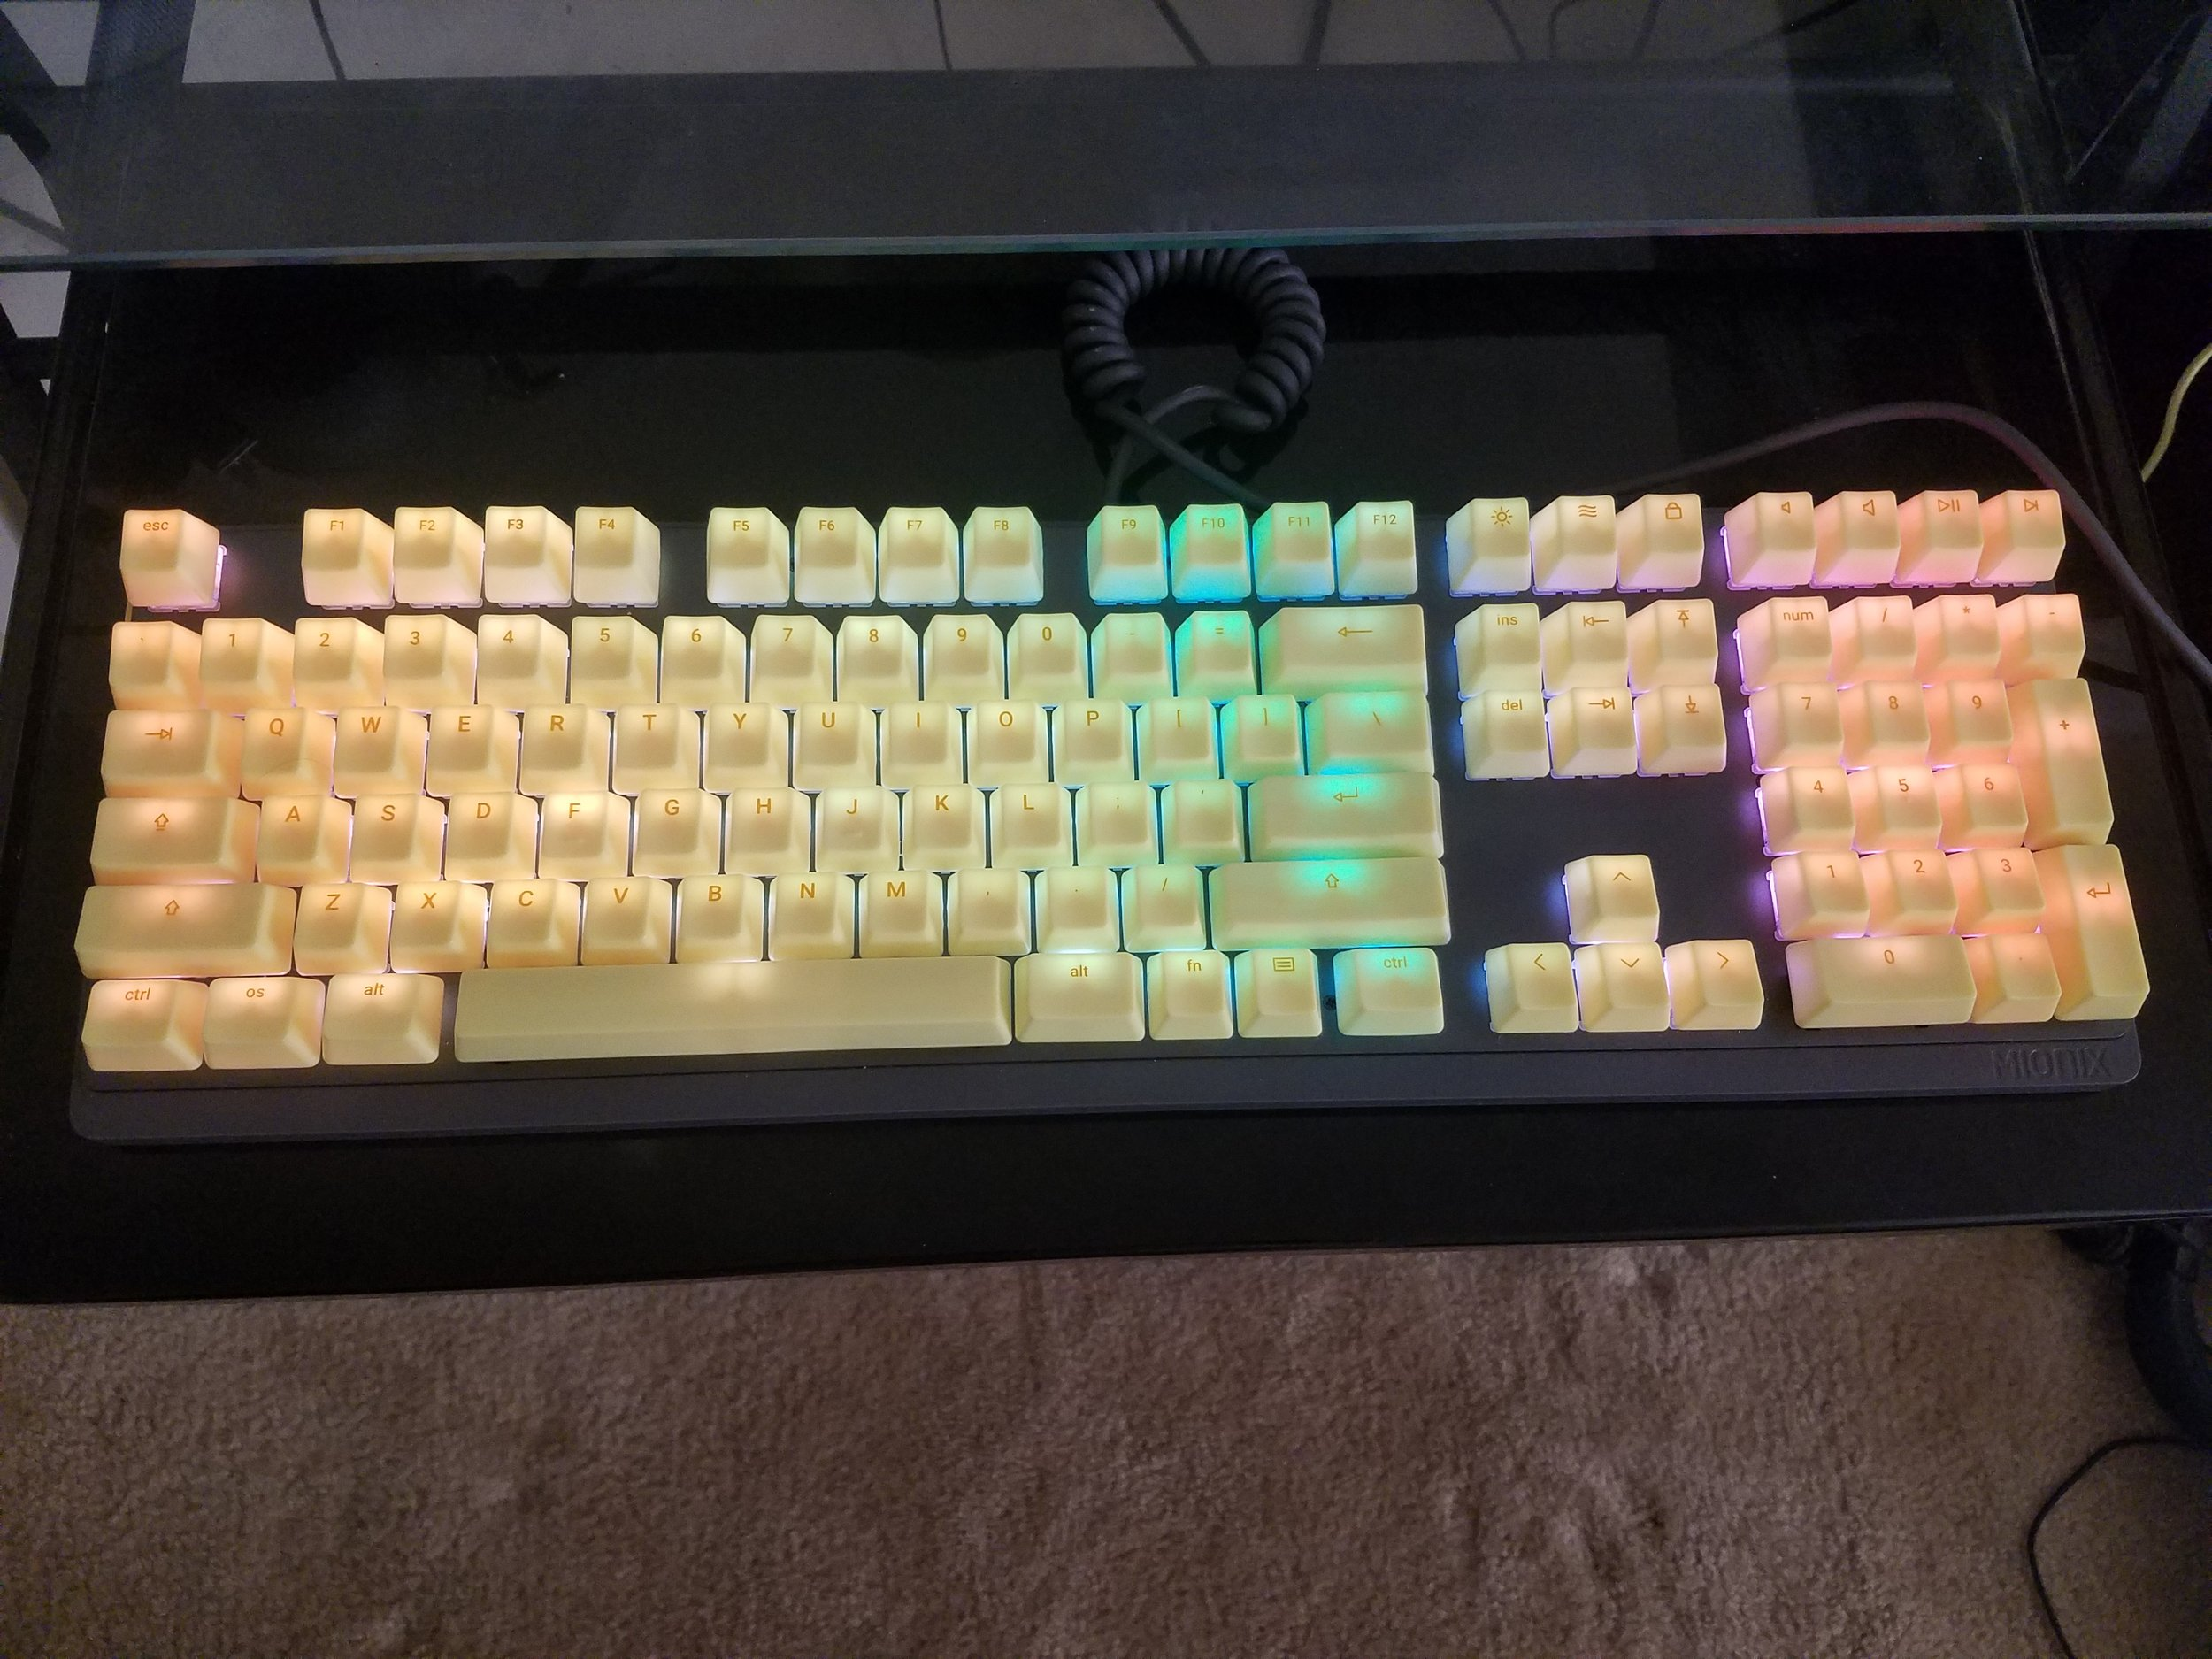 The Mionix Wei in all of its glory!